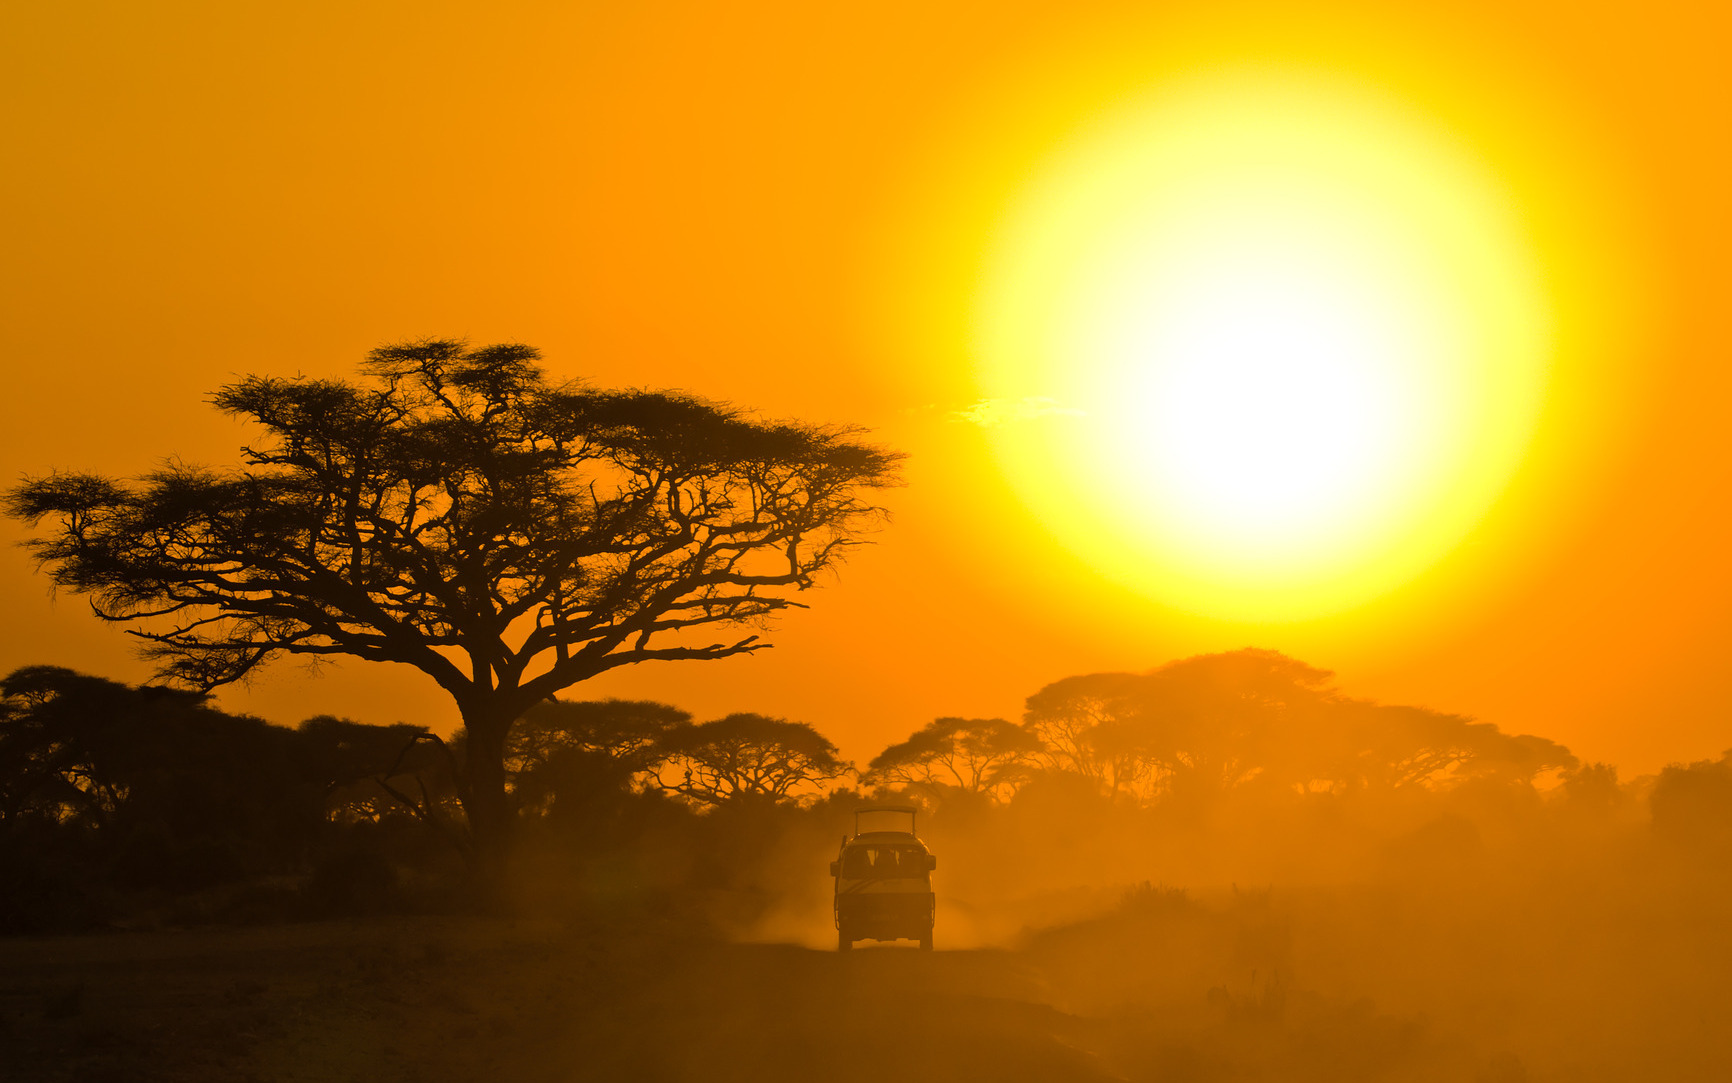 Safari jeep driving through the savannah in the sunset • Safari Holidays by Holiday Hamster